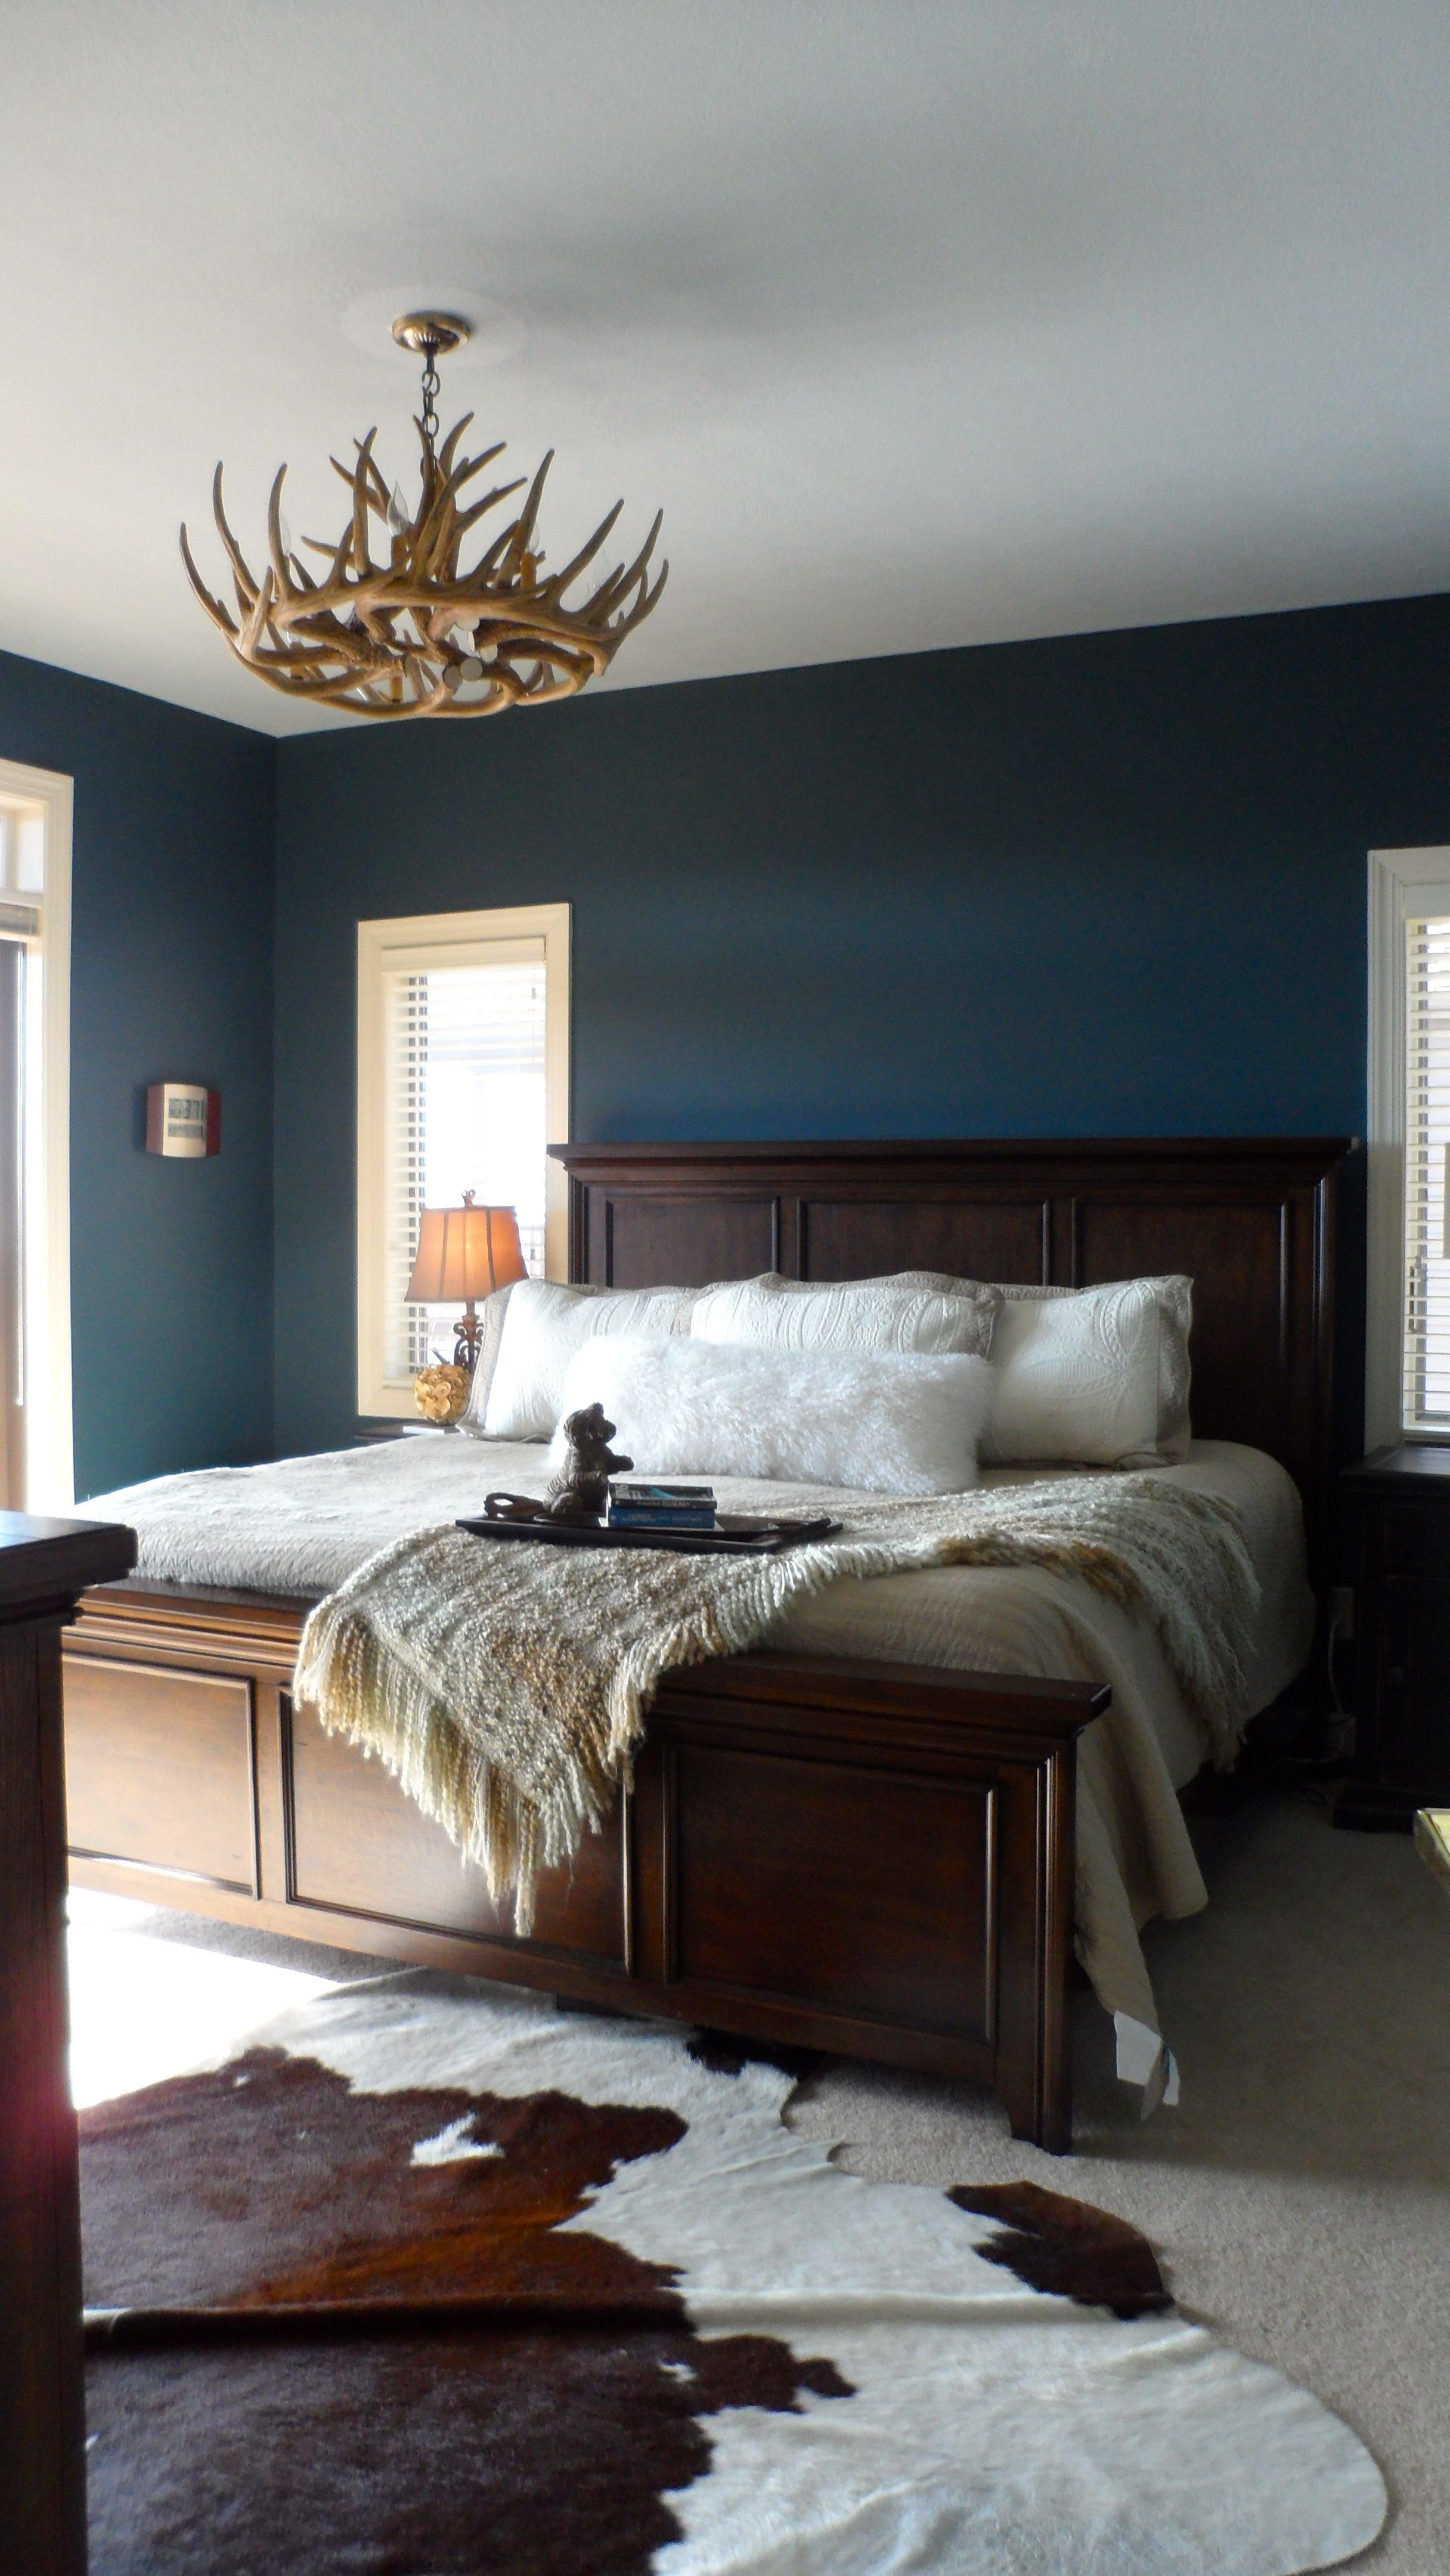 Bedroom Paint Colors 2020 With Navy Bed Set In 2020 Blue Bedroom Walls Blue Master Bedroom Master Bedrooms Decor